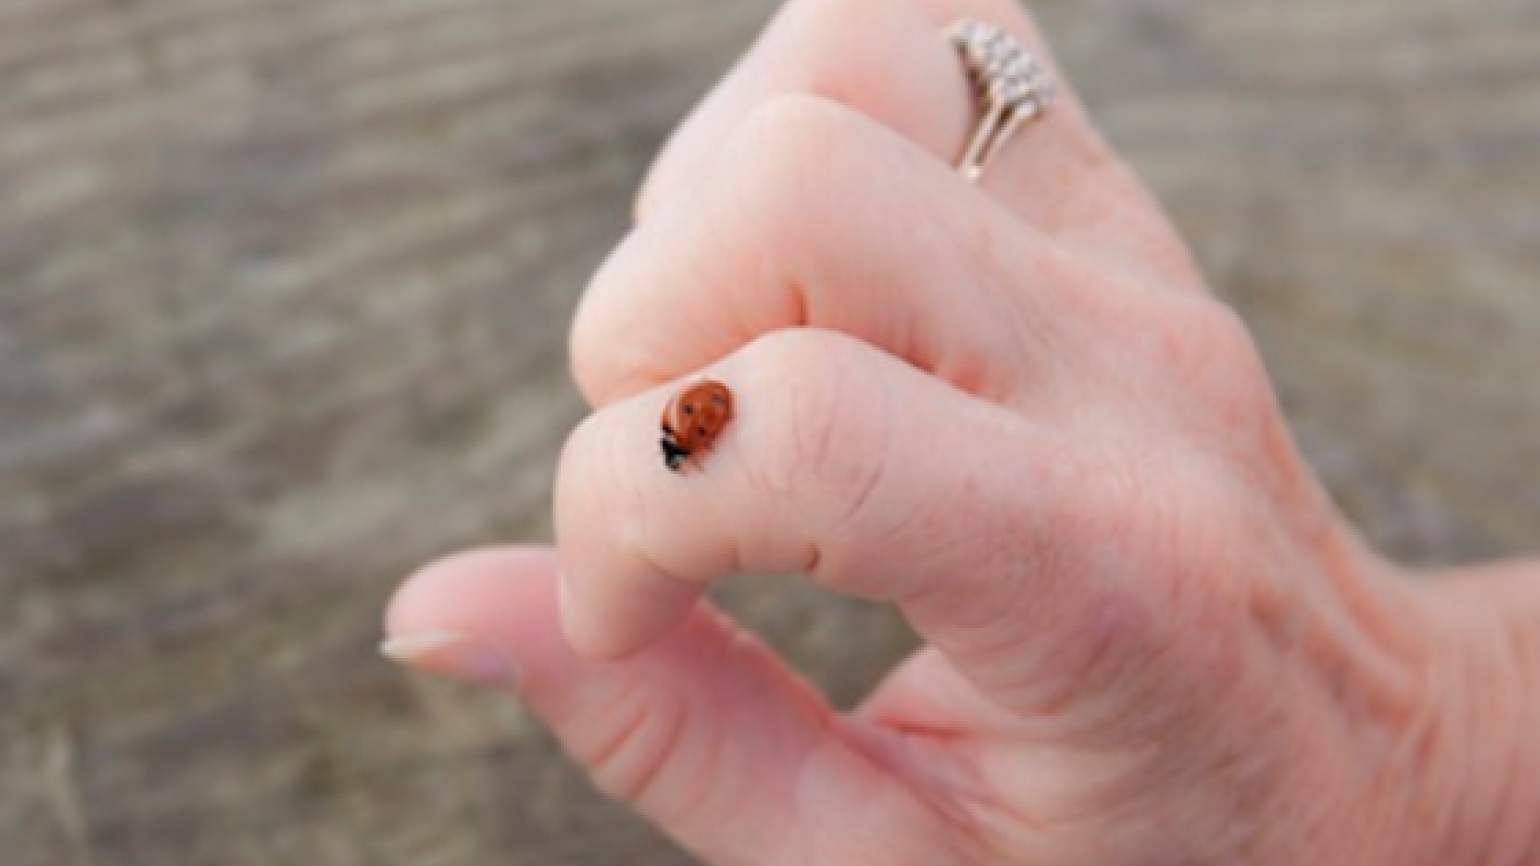 ladybug on a woman's hand